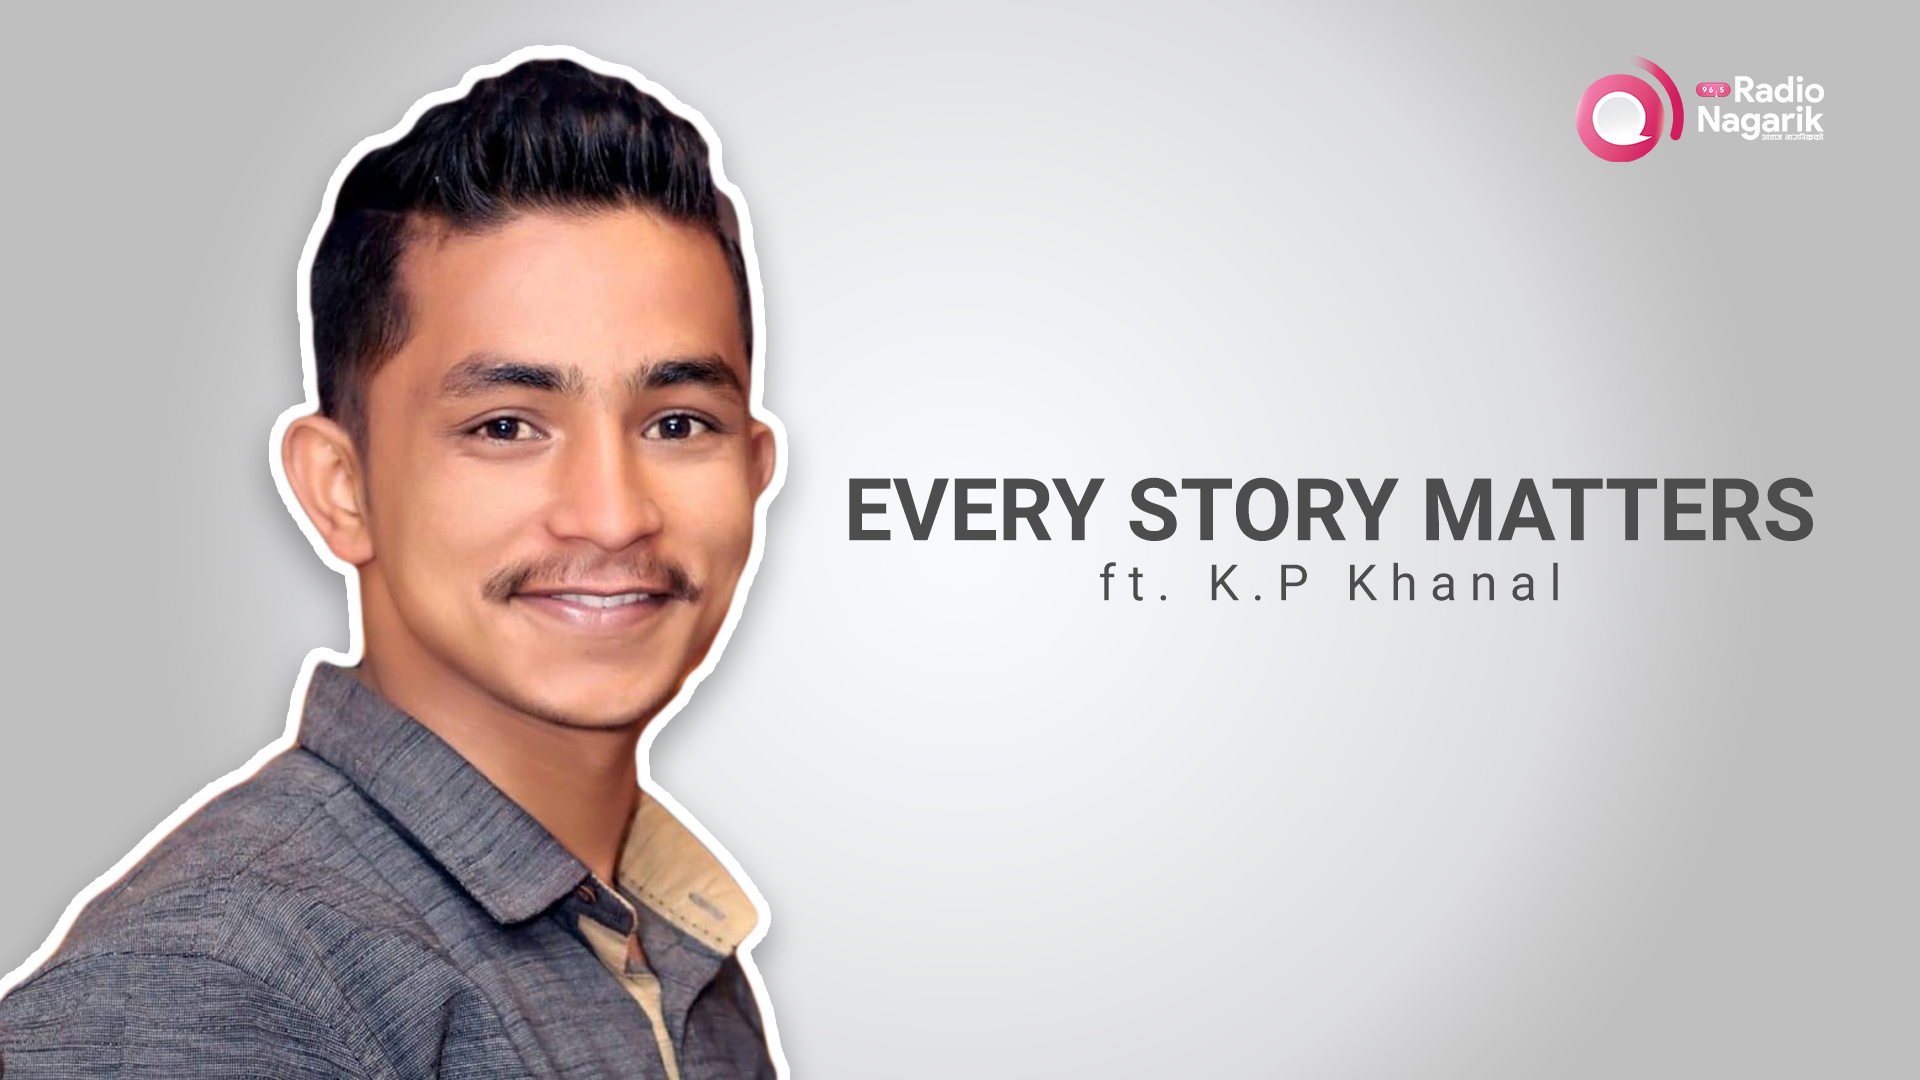 Young activist who cleans while everybody sleeps - PODCAST with KP Khanal | Every Story Matters